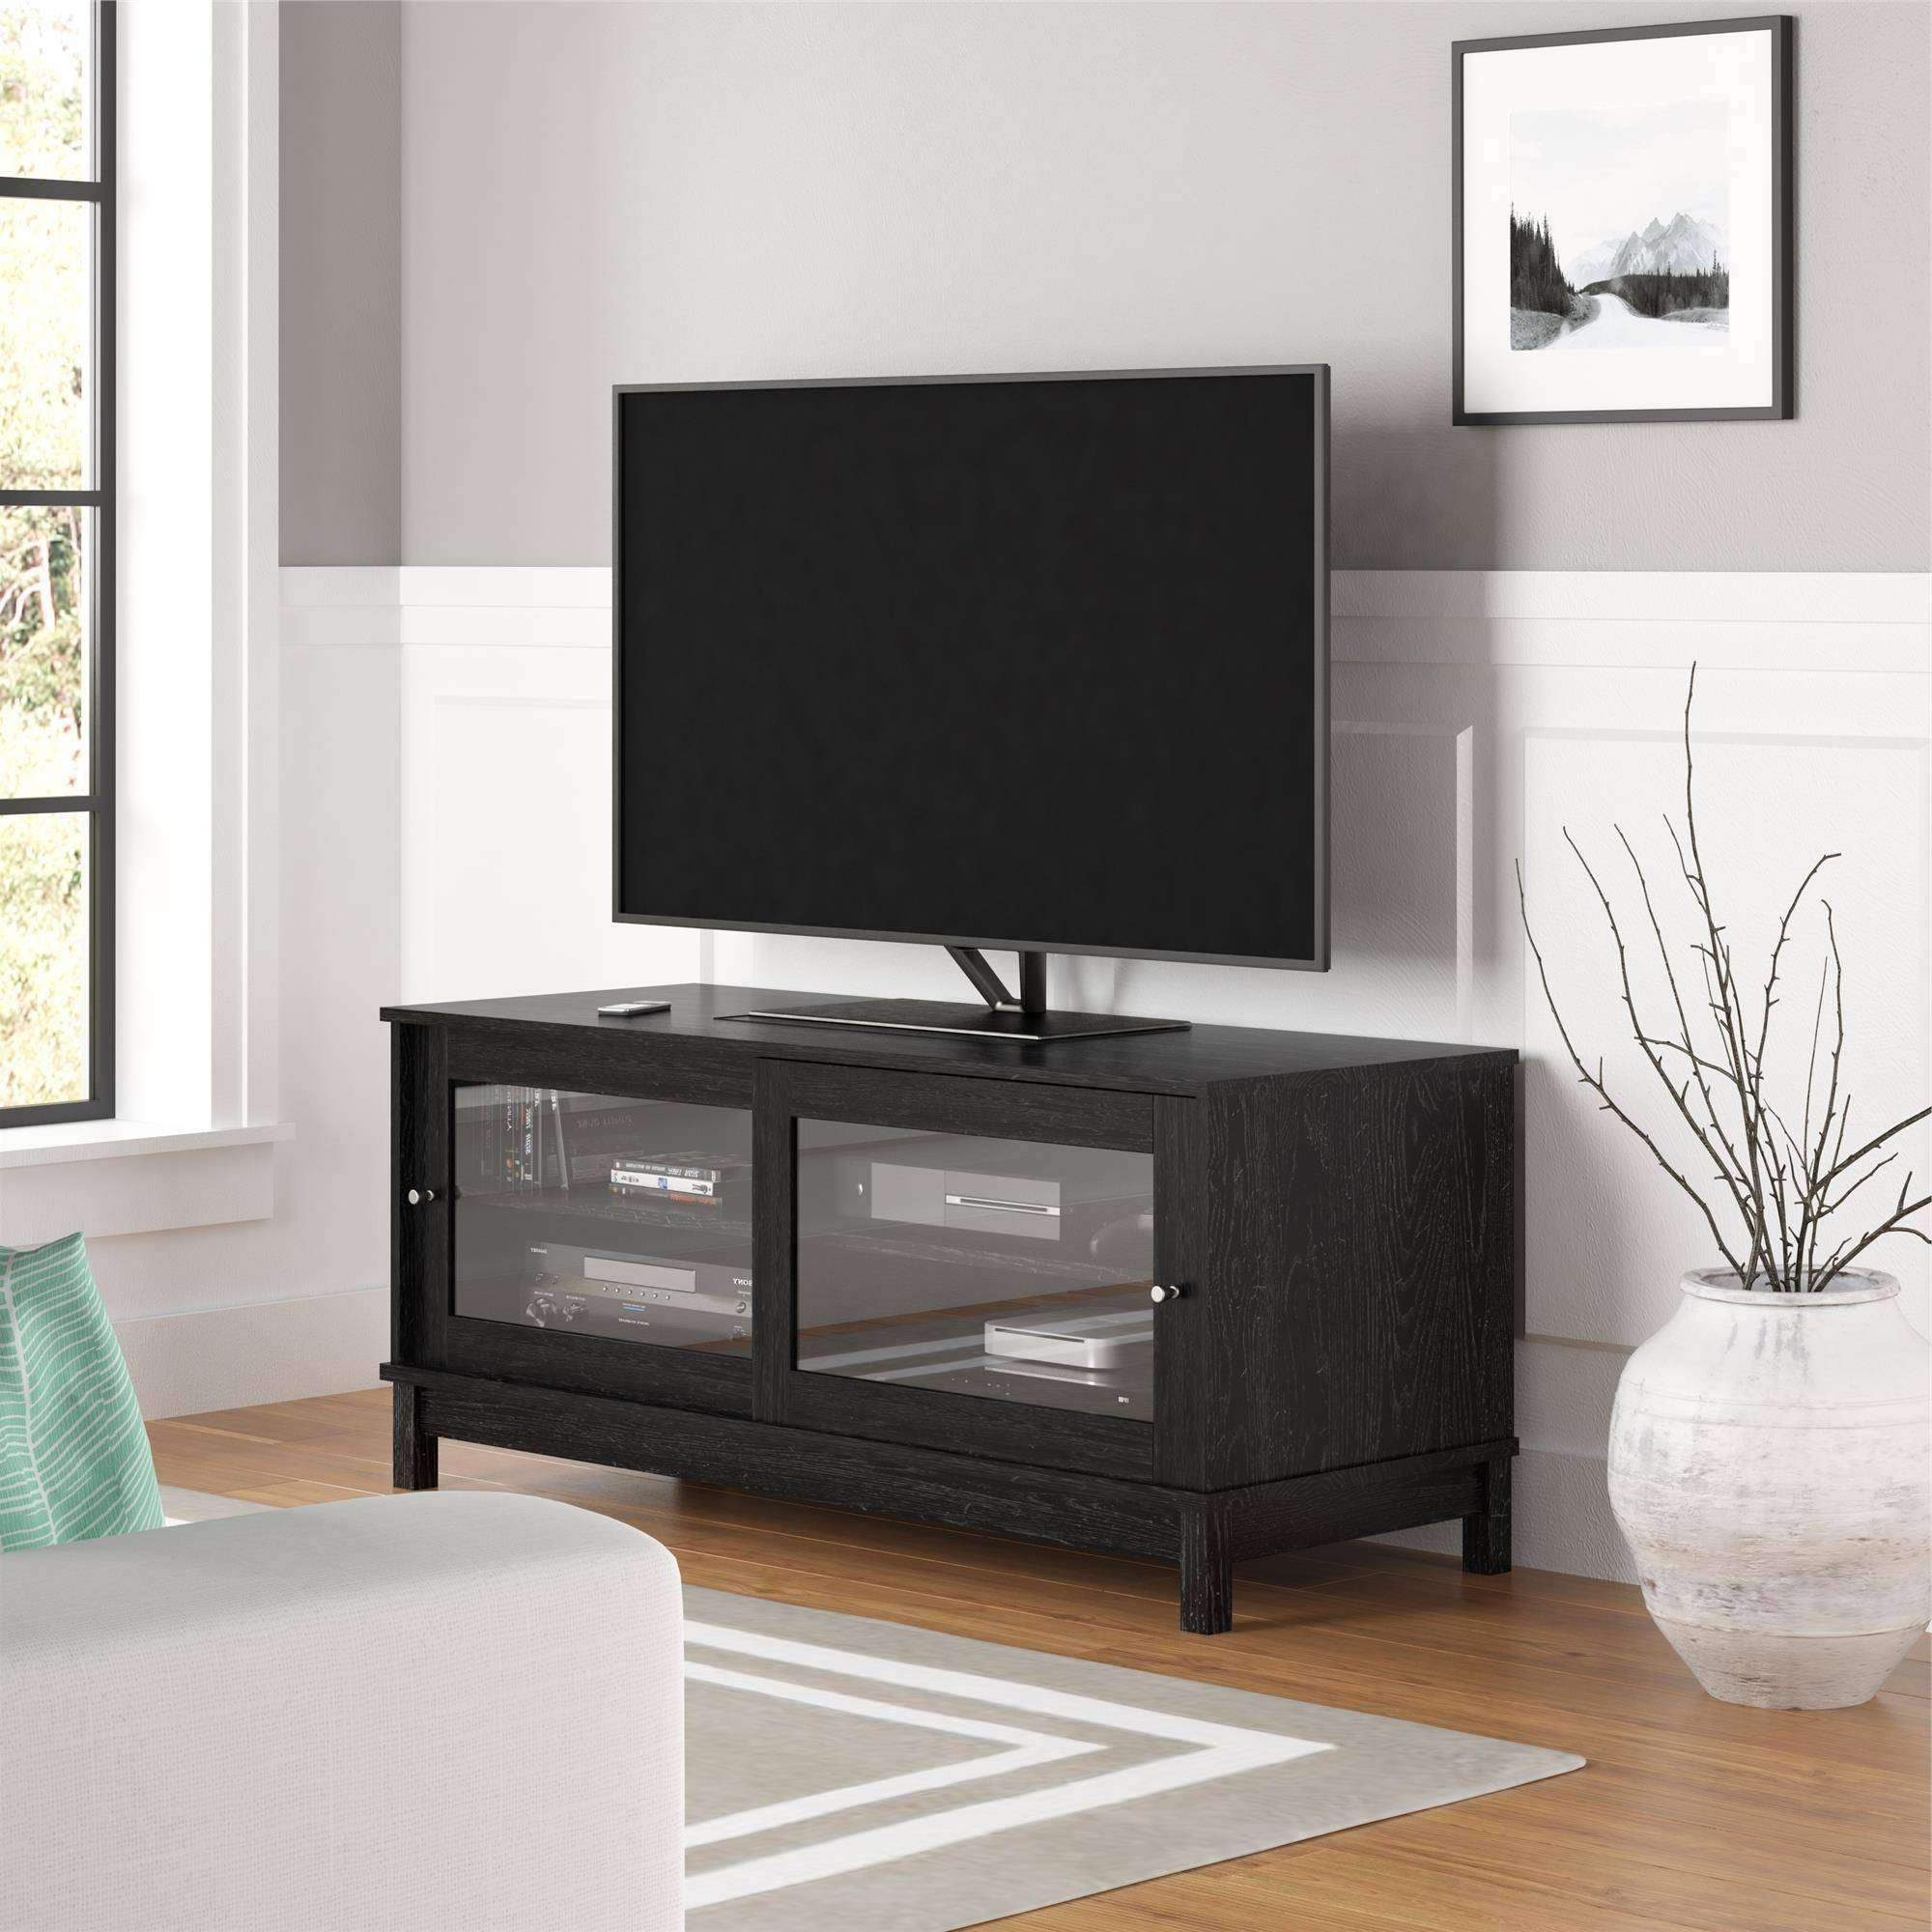 "Mainstays 55"" Tv Stand With Sliding Glass Doors, Dark Gray Oak Pertaining To Black Tv Stands With Glass Doors (View 7 of 15)"